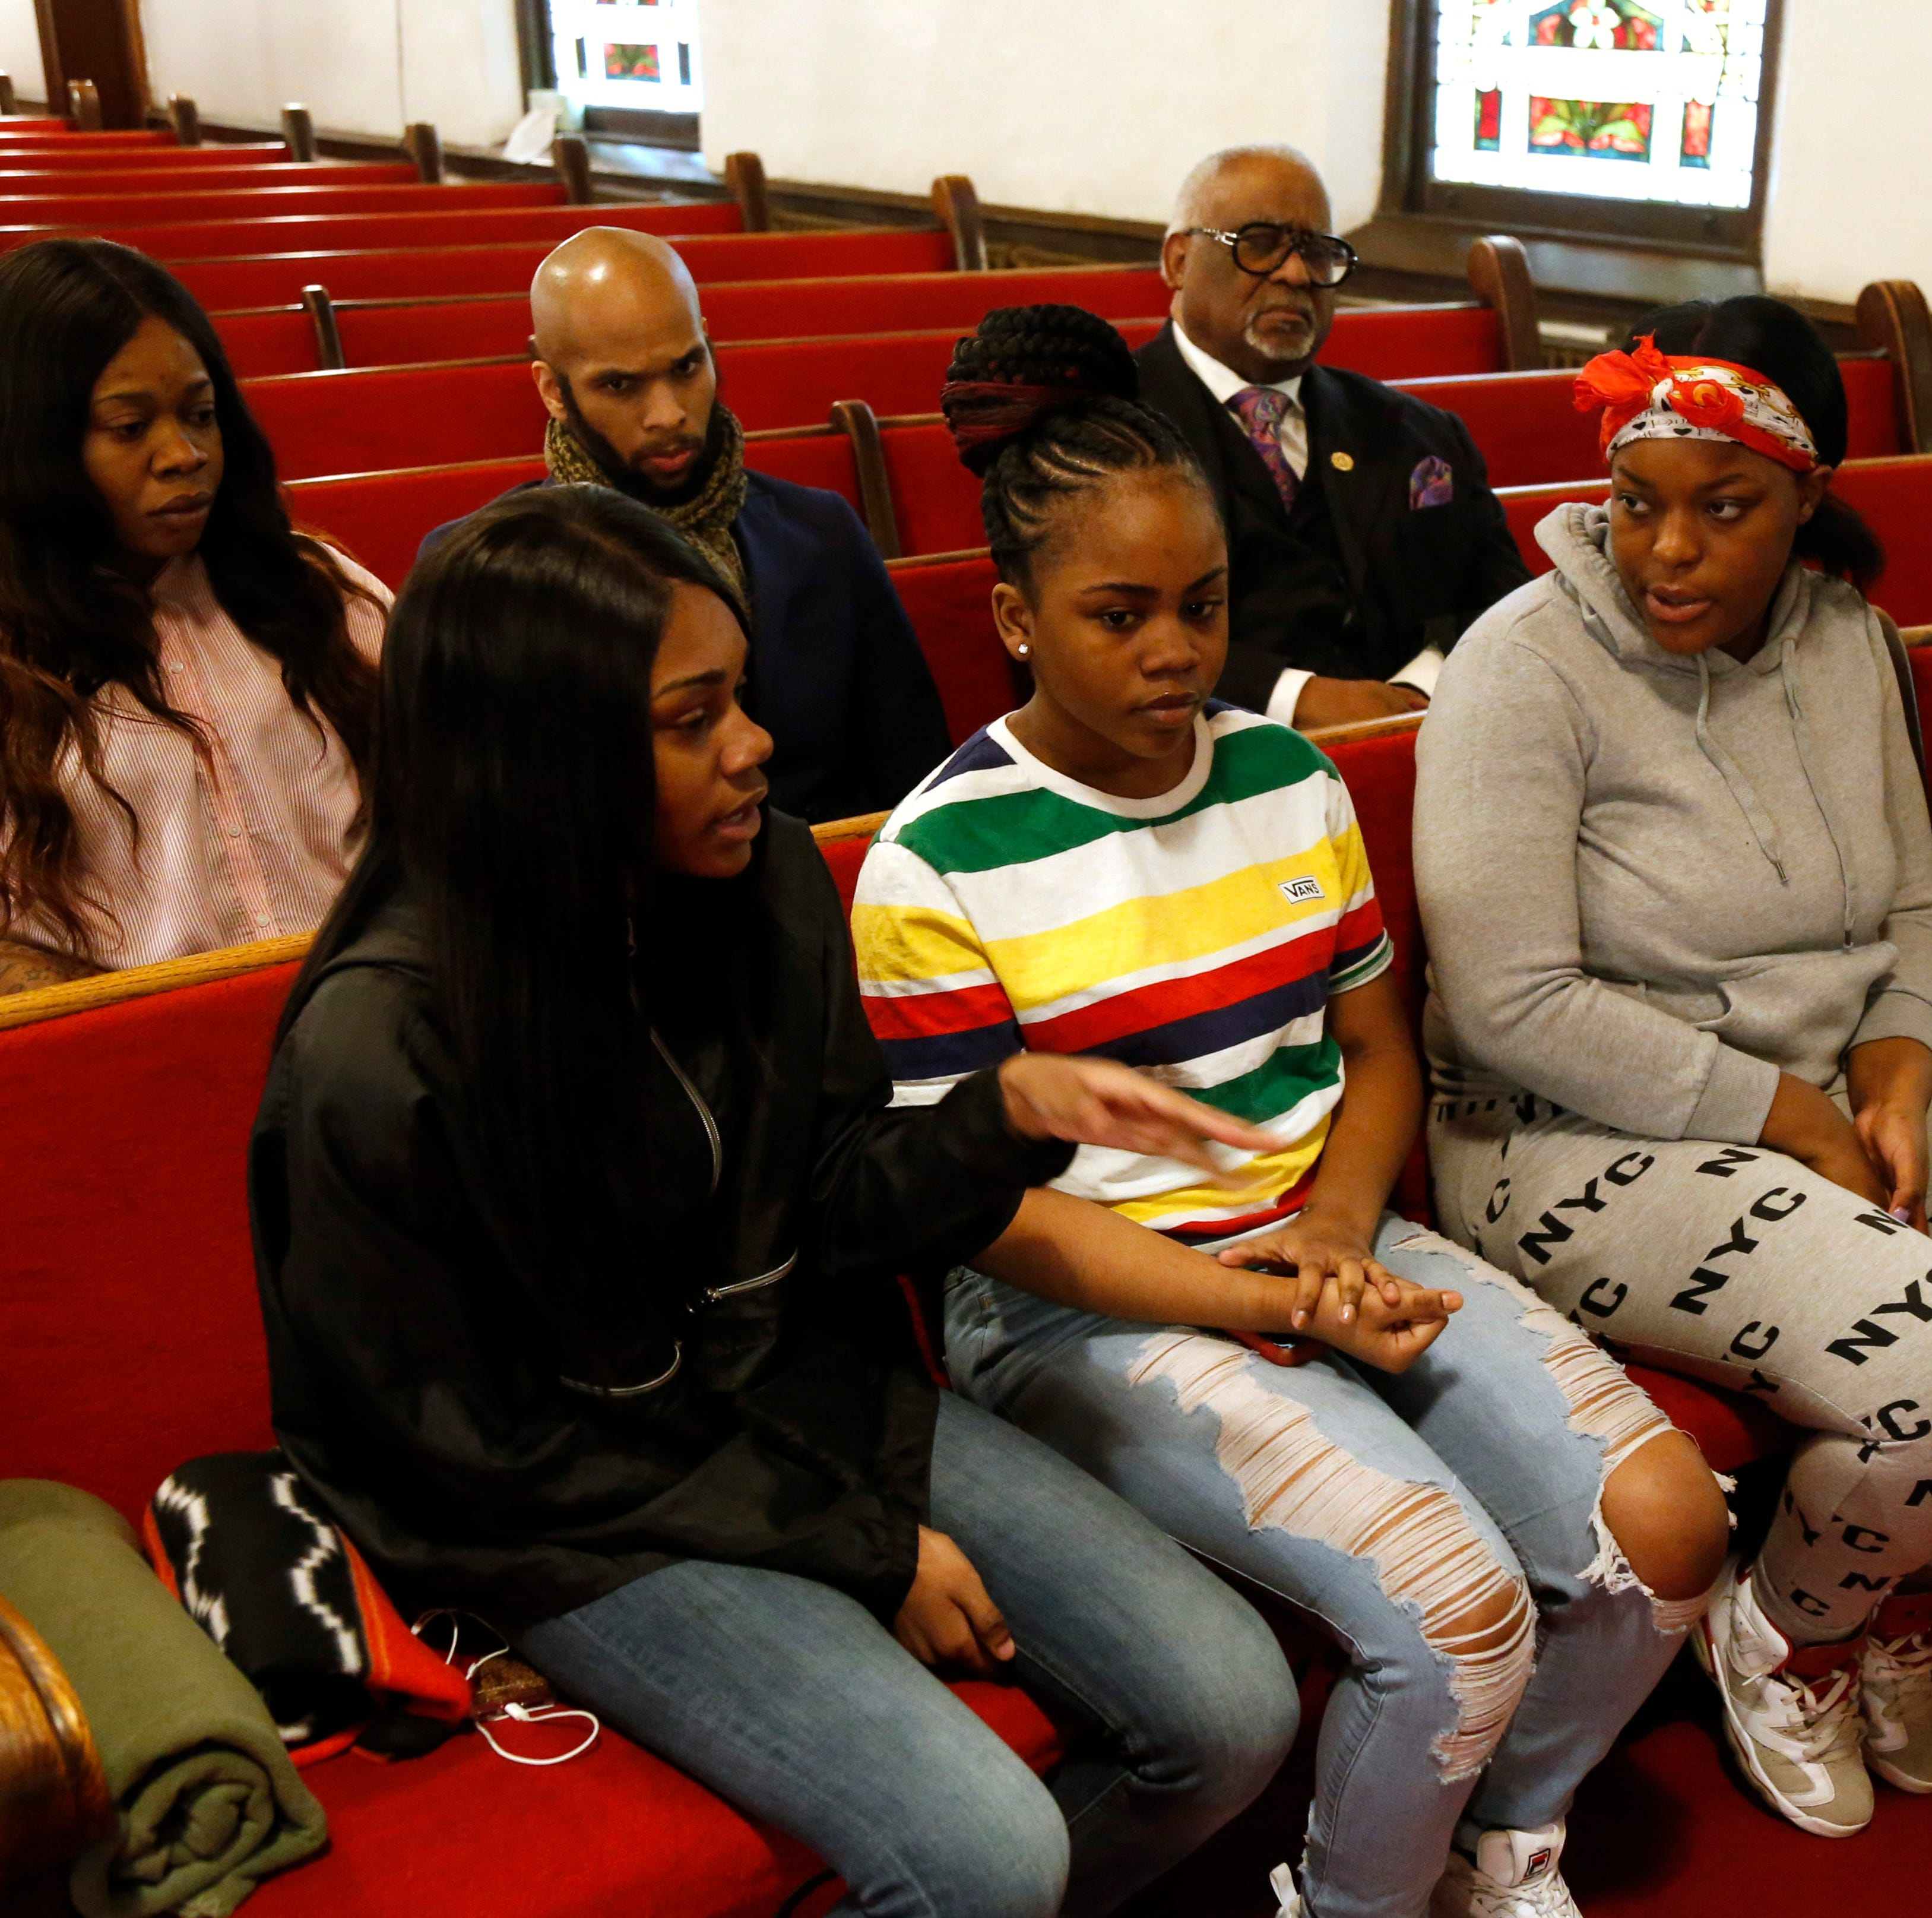 Front row, from left, Jamela Barnett, Julissa Dawkins, Jahnya Webb and Kimora Thompson, back row from left, Melissa Lynch, Pastor Edwrin Sutton, and Pastor Jesse Bottoms at Smith Metropolitan AME Zion Church in the City of Poughkeepsie on March 13, 2019.